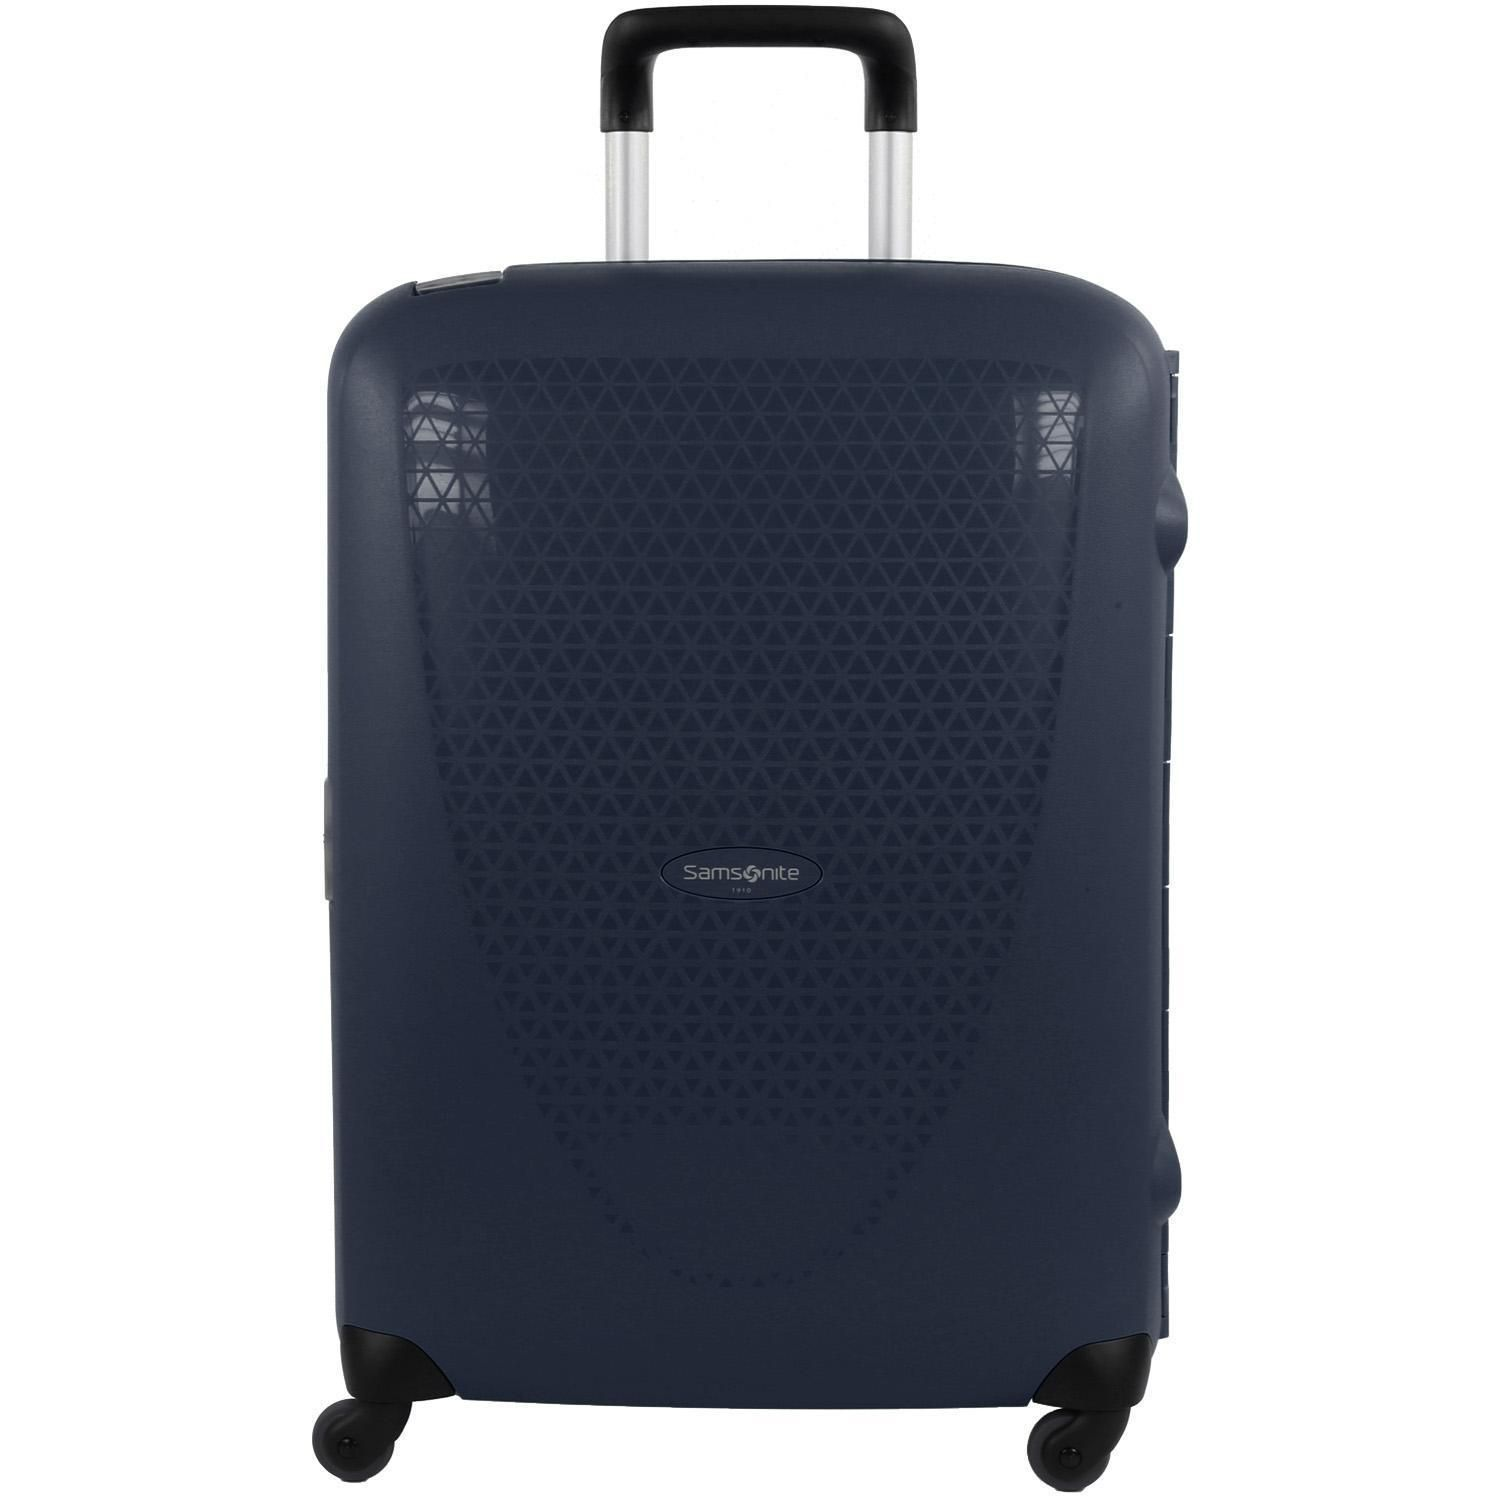 samsonite termo young spinner 4 rollen trolley 85 cm kaufen bei markenkoffer. Black Bedroom Furniture Sets. Home Design Ideas